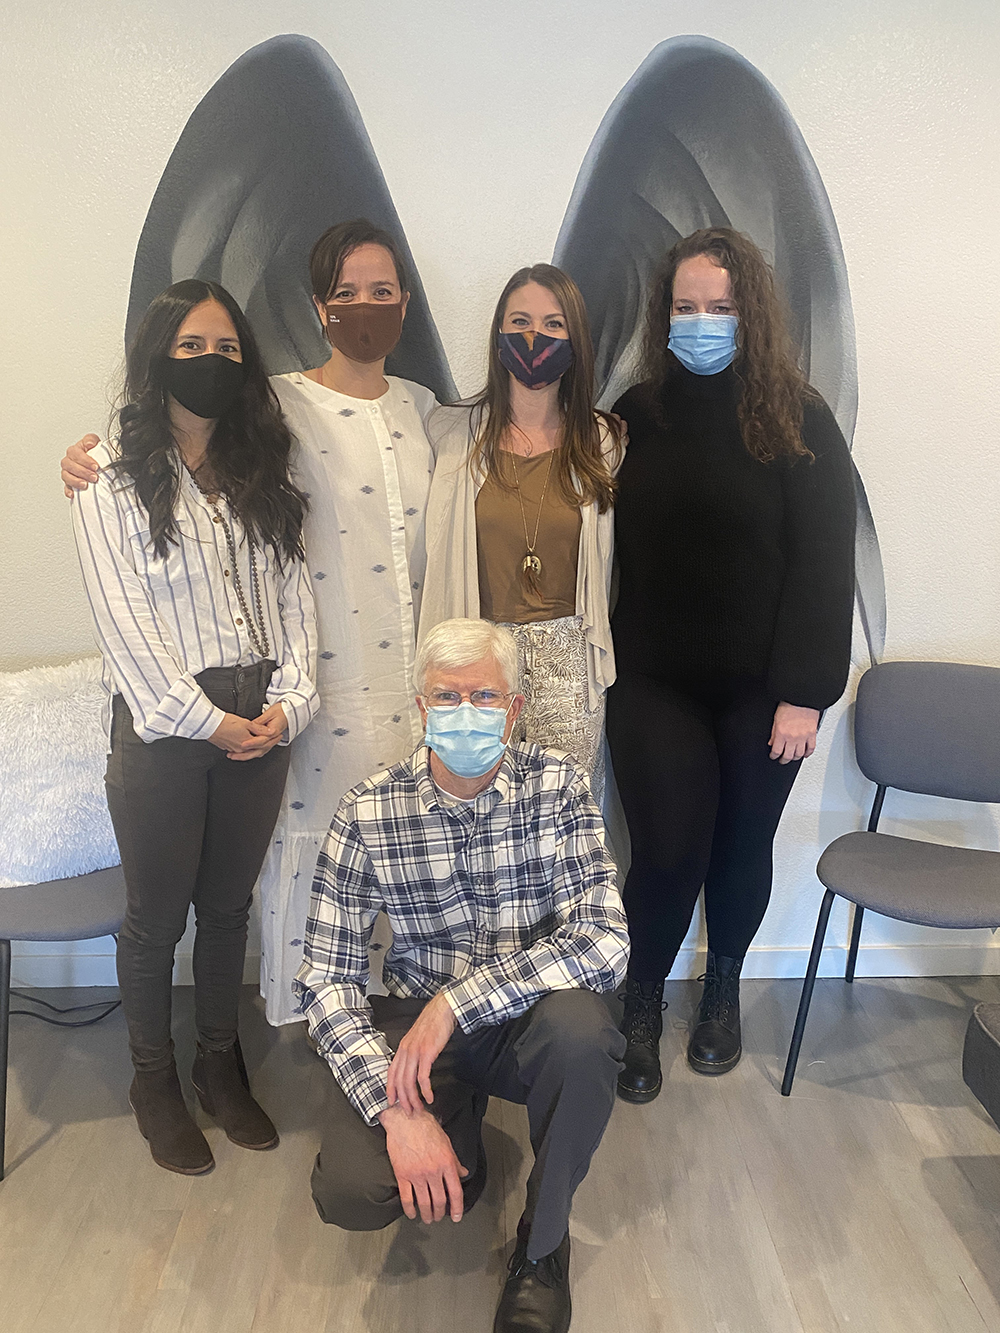 Patient specialists, lisa rundall, elena beltran, and kristin black, standing with michael harman and dr. Caitlin r. Dilli standing in front of a wall on which angel wings are depicted.